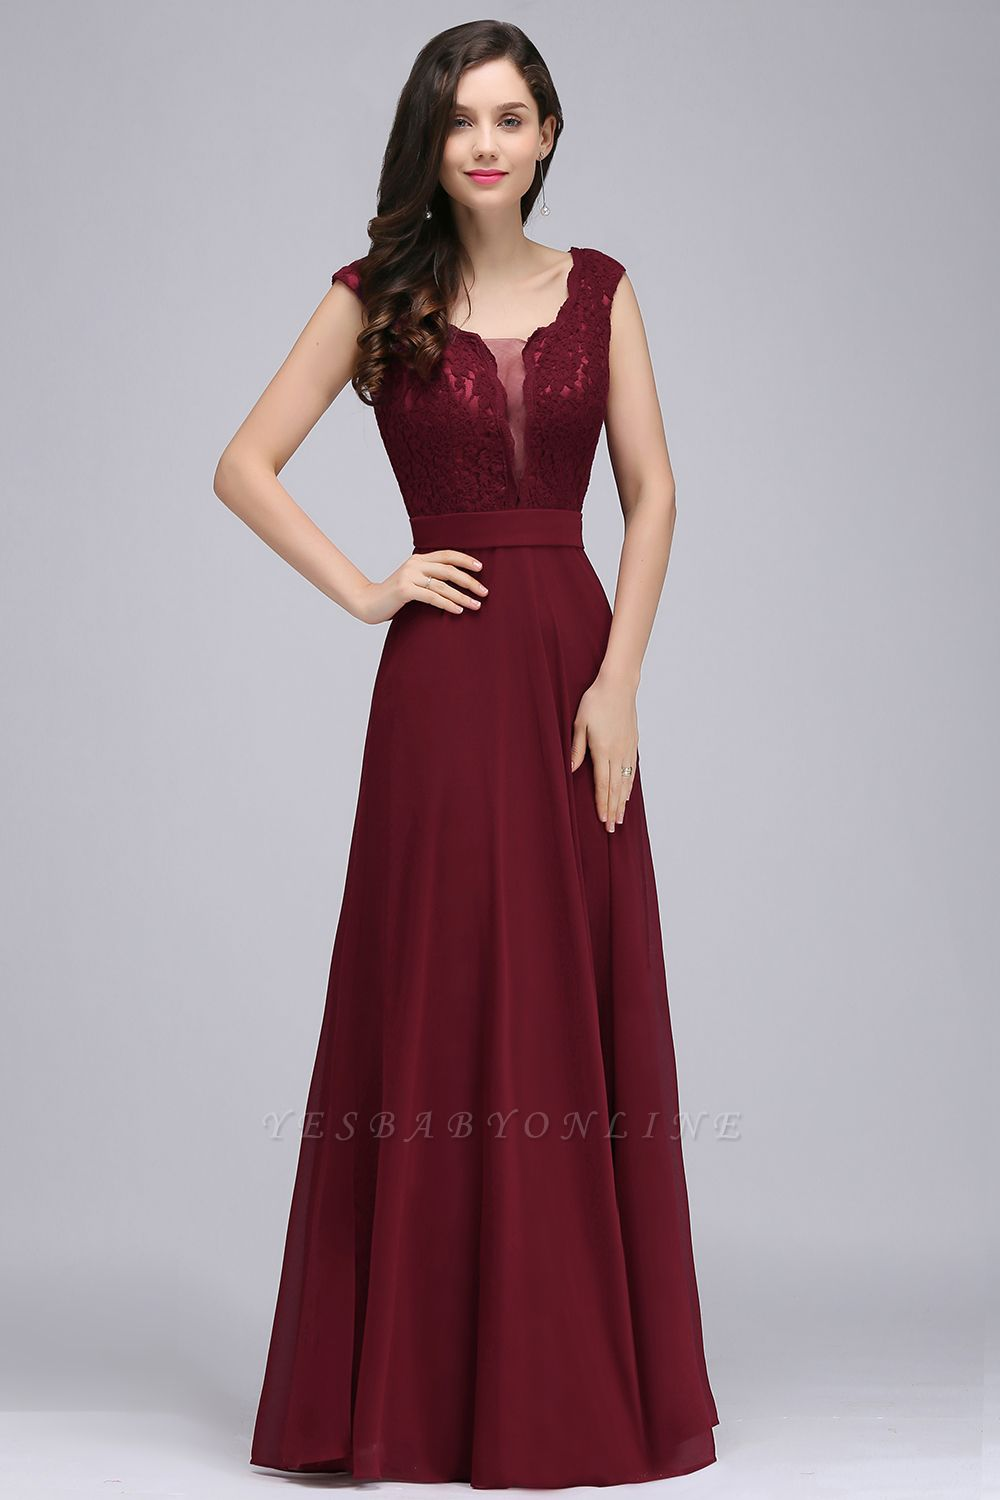 Cheap Elegant Lace A-line Long Burgundy Prom Dress in Stock